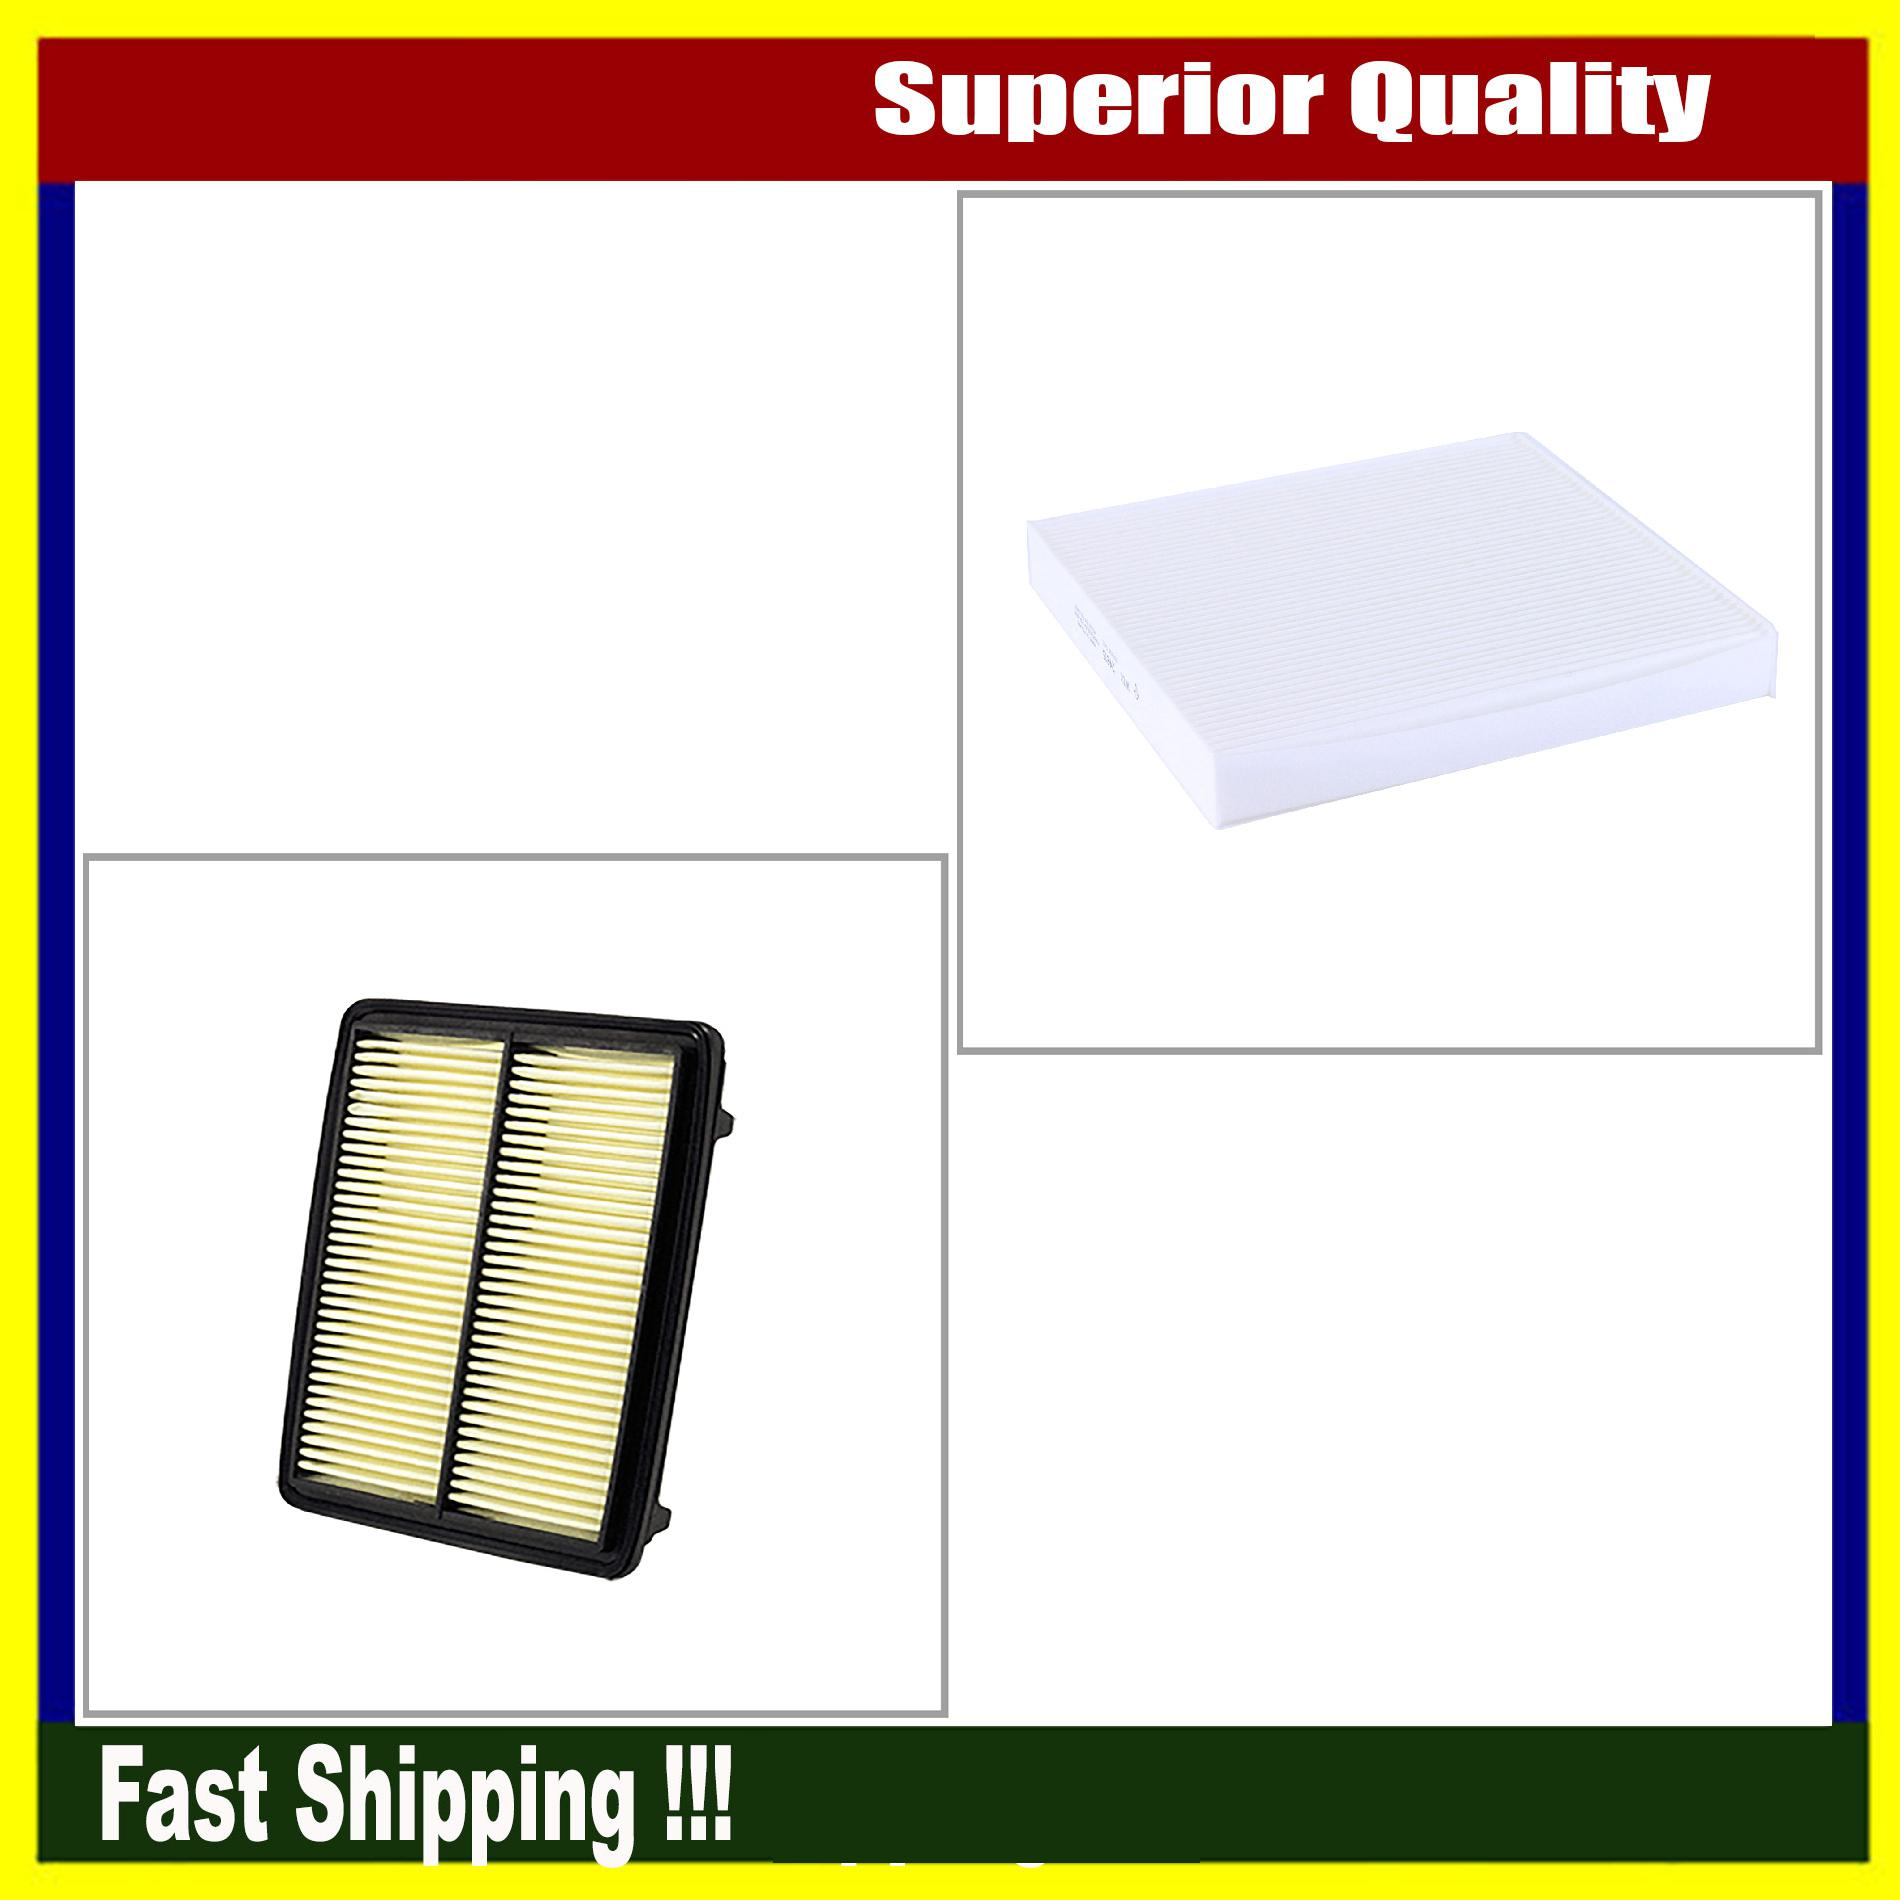 WIX Brand New Air Filter Kit 2Pcs Set For 2018 Acura RLX